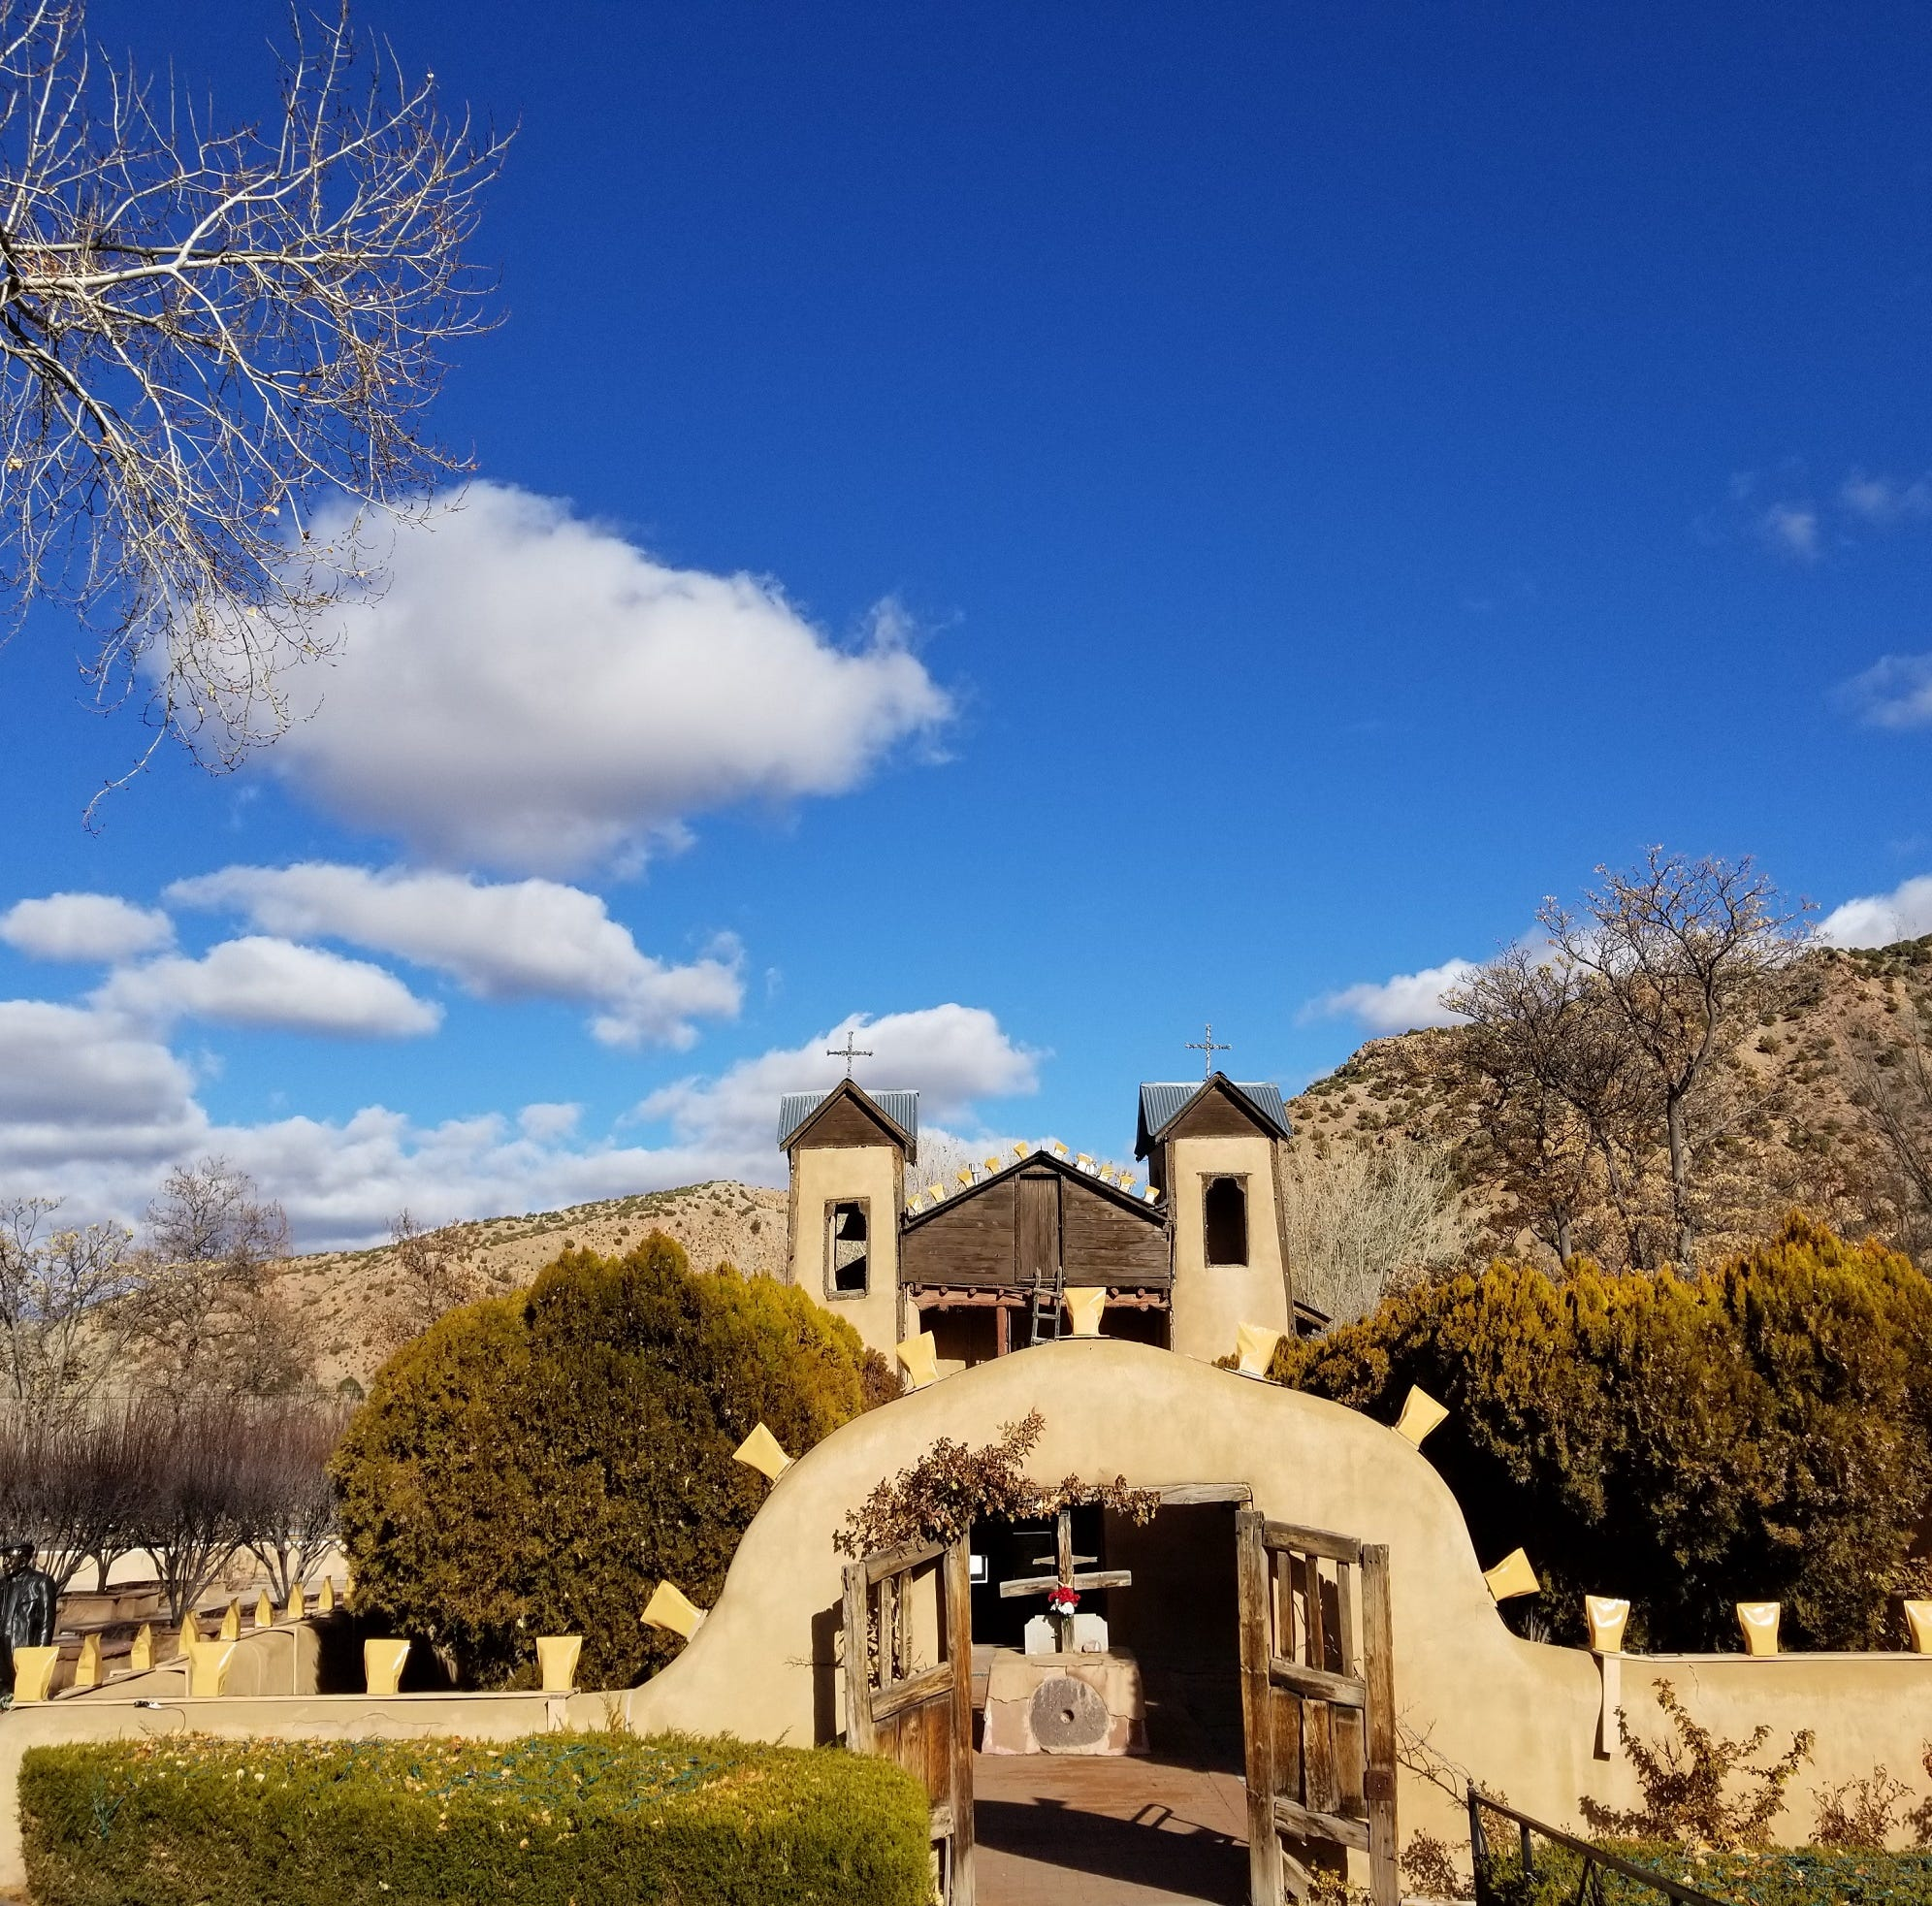 Visit New Mexico, the land of enchantment